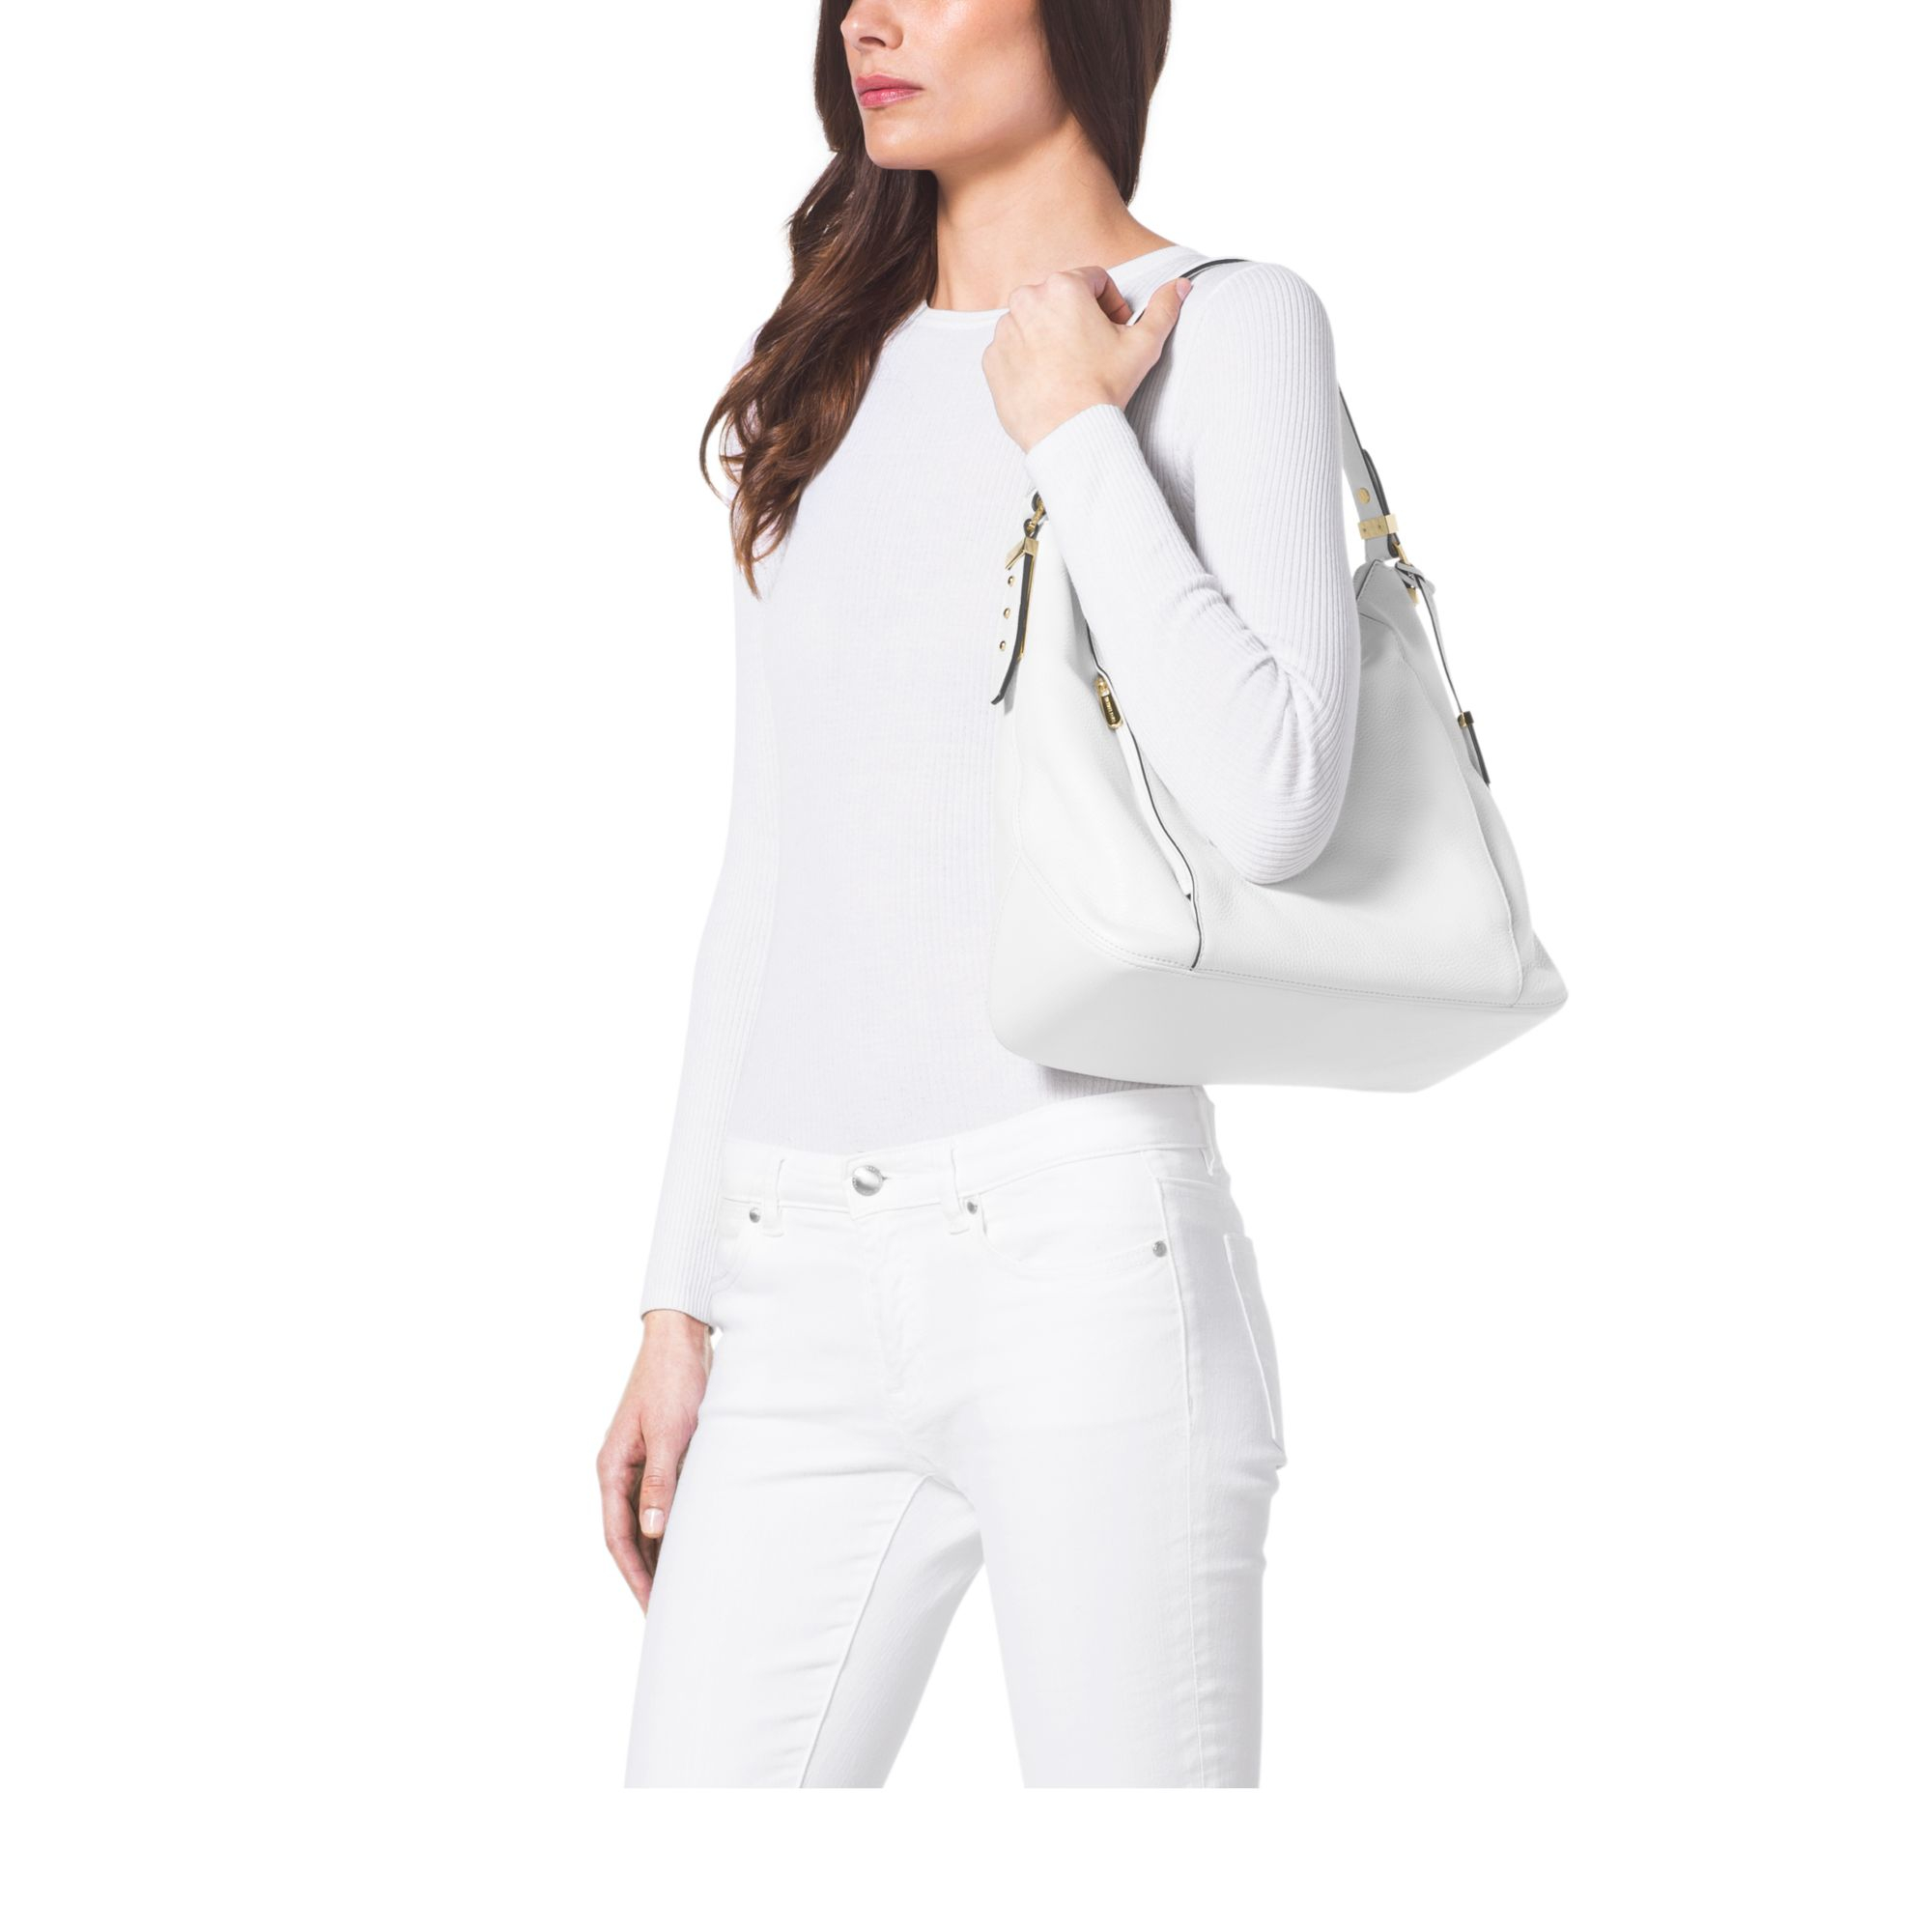 44a494729acc Lyst - Michael Kors Bowery Large Leather Shoulder Bag in White